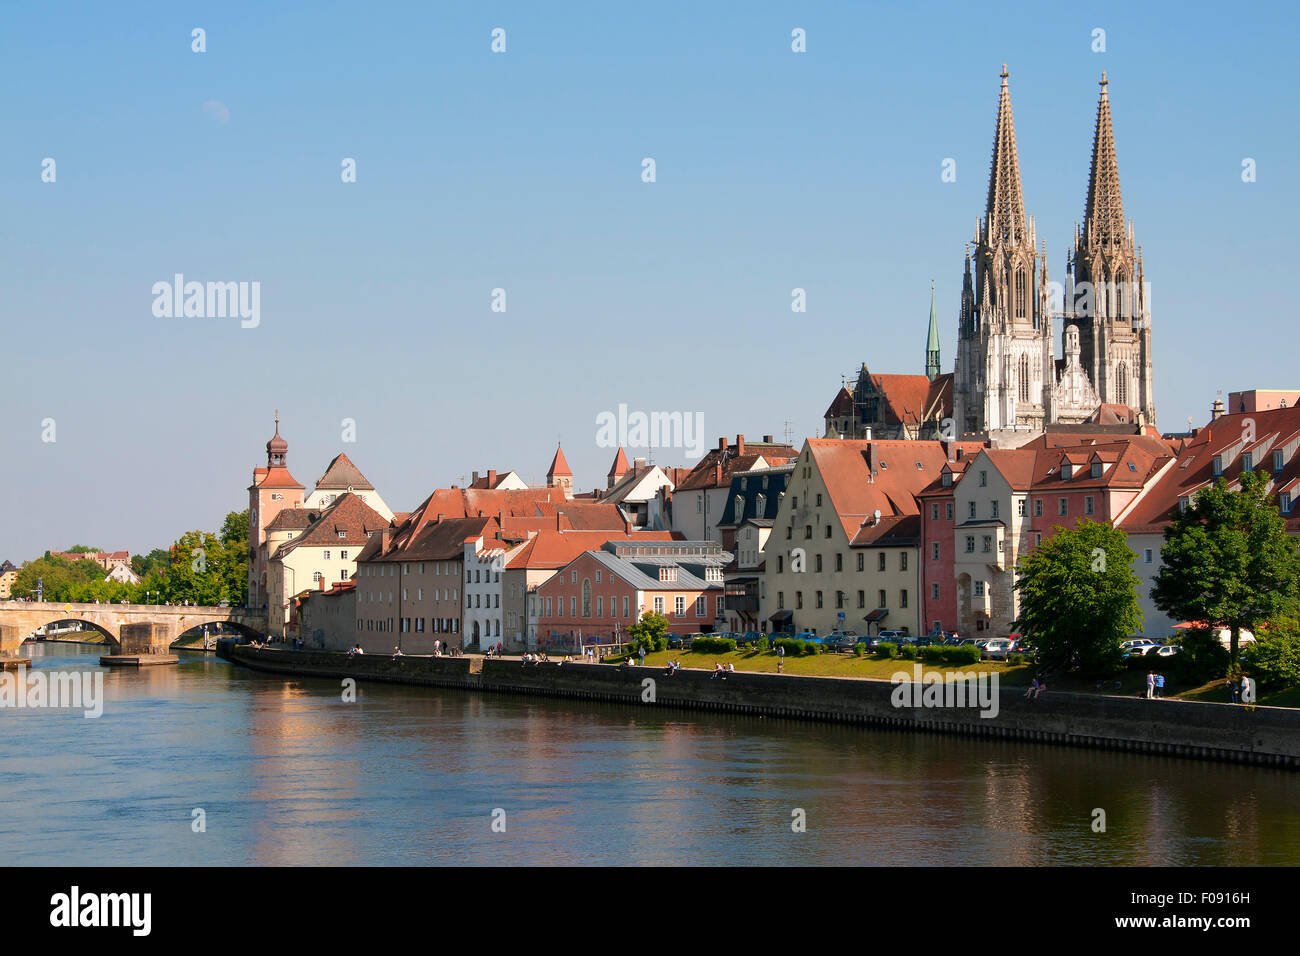 Cityscape Regensburg in Bavaria, Germany at evening Stock Photo